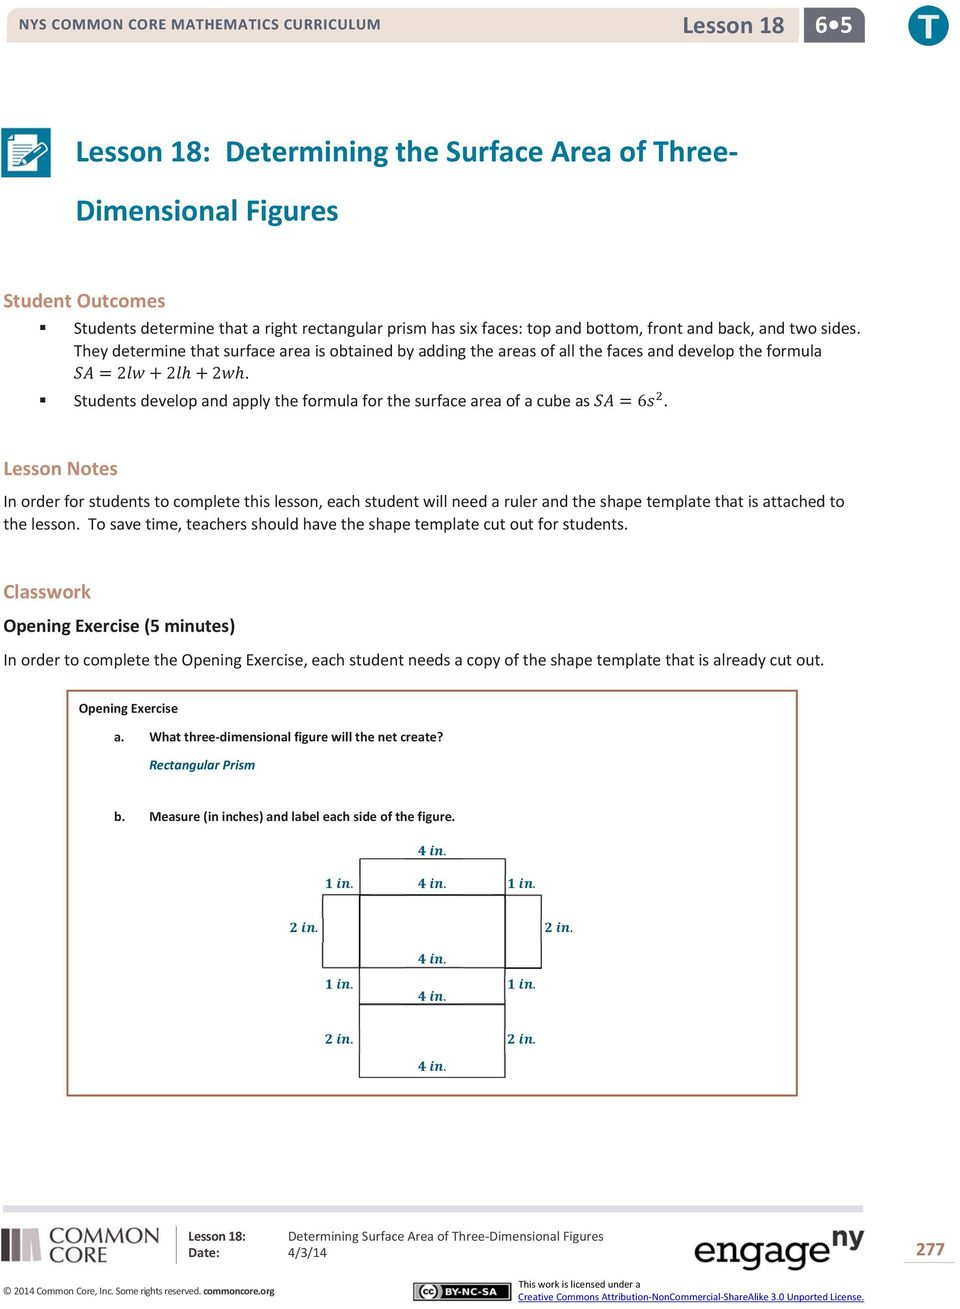 Lesson 18 Determining Surface Area Of Three Dimensional Figures Pdf